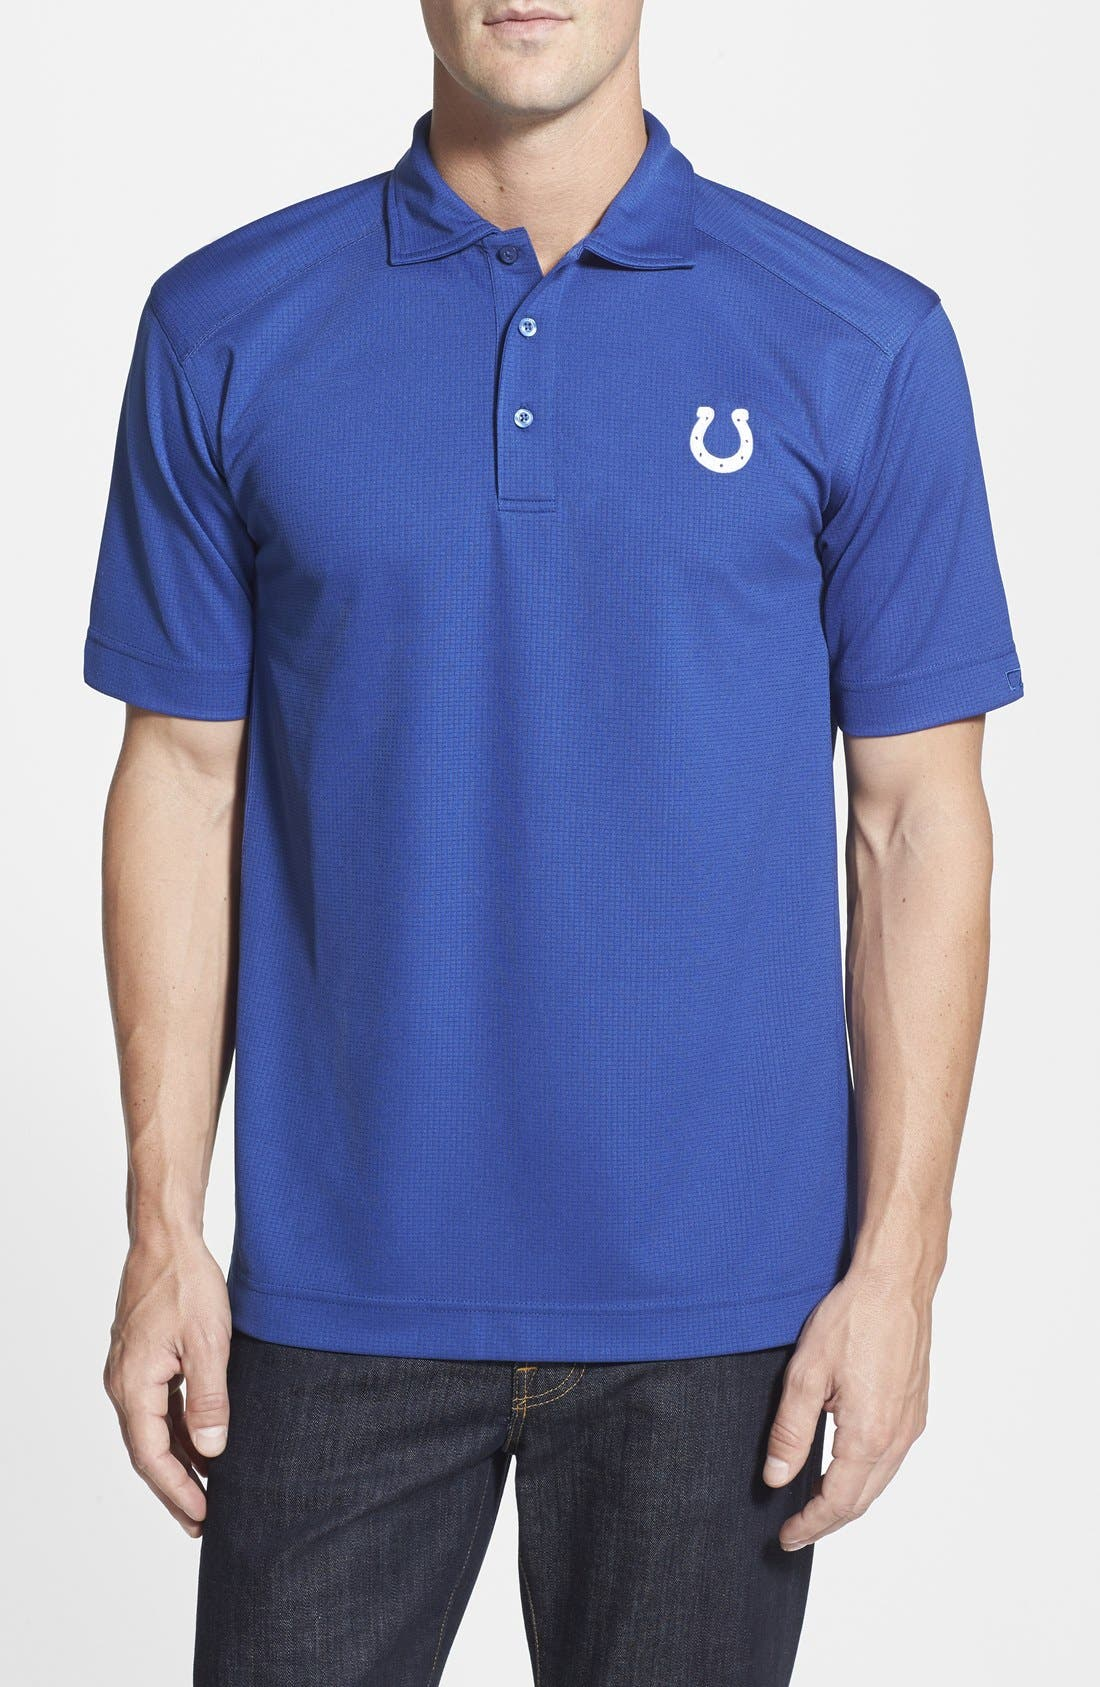 Main Image - Cutter & Buck Indianapolis Colts - Genre DryTec Moisture Wicking Polo